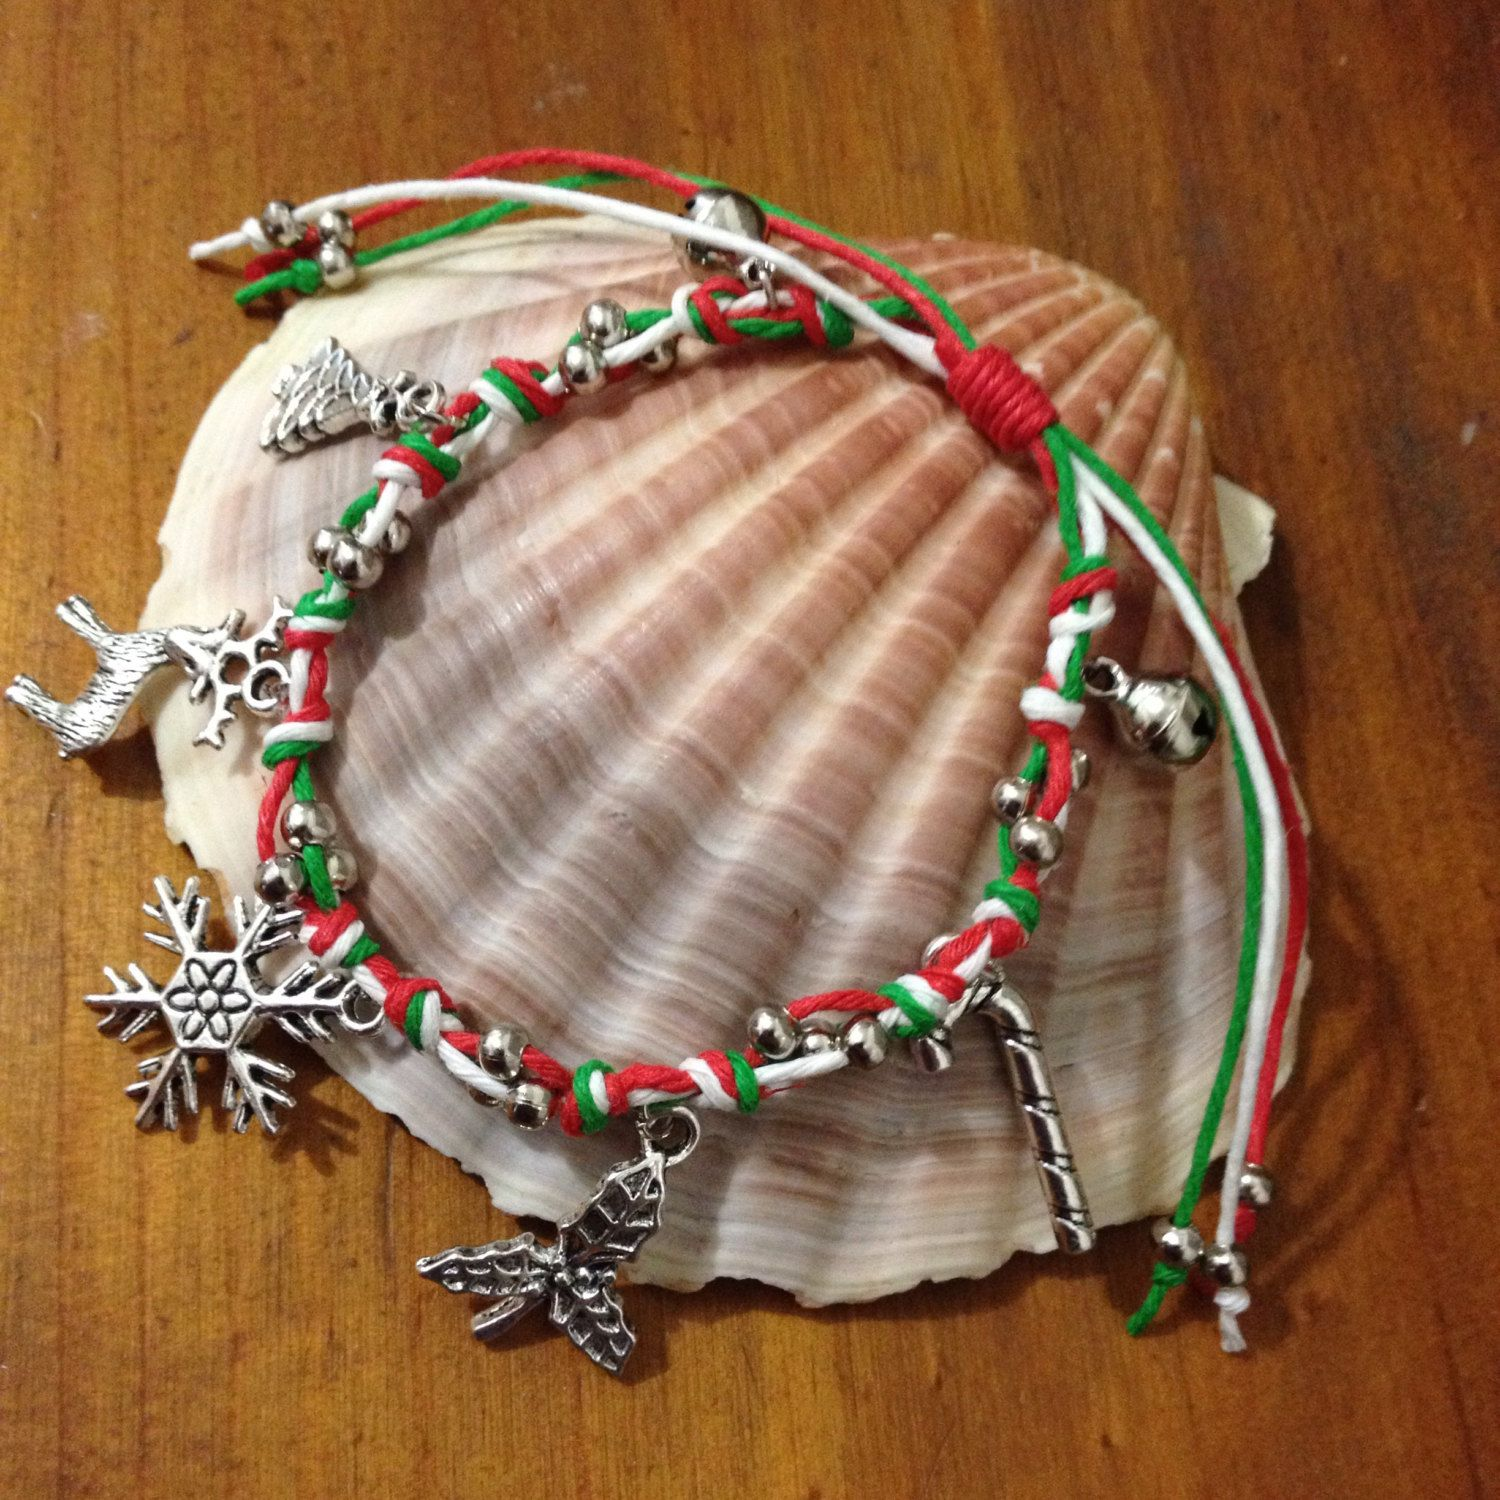 Hemp cord Christmas/Xmas Charm Friendship Bracelet with knotted detail and metal beads by PurpleowlProducts on Etsy